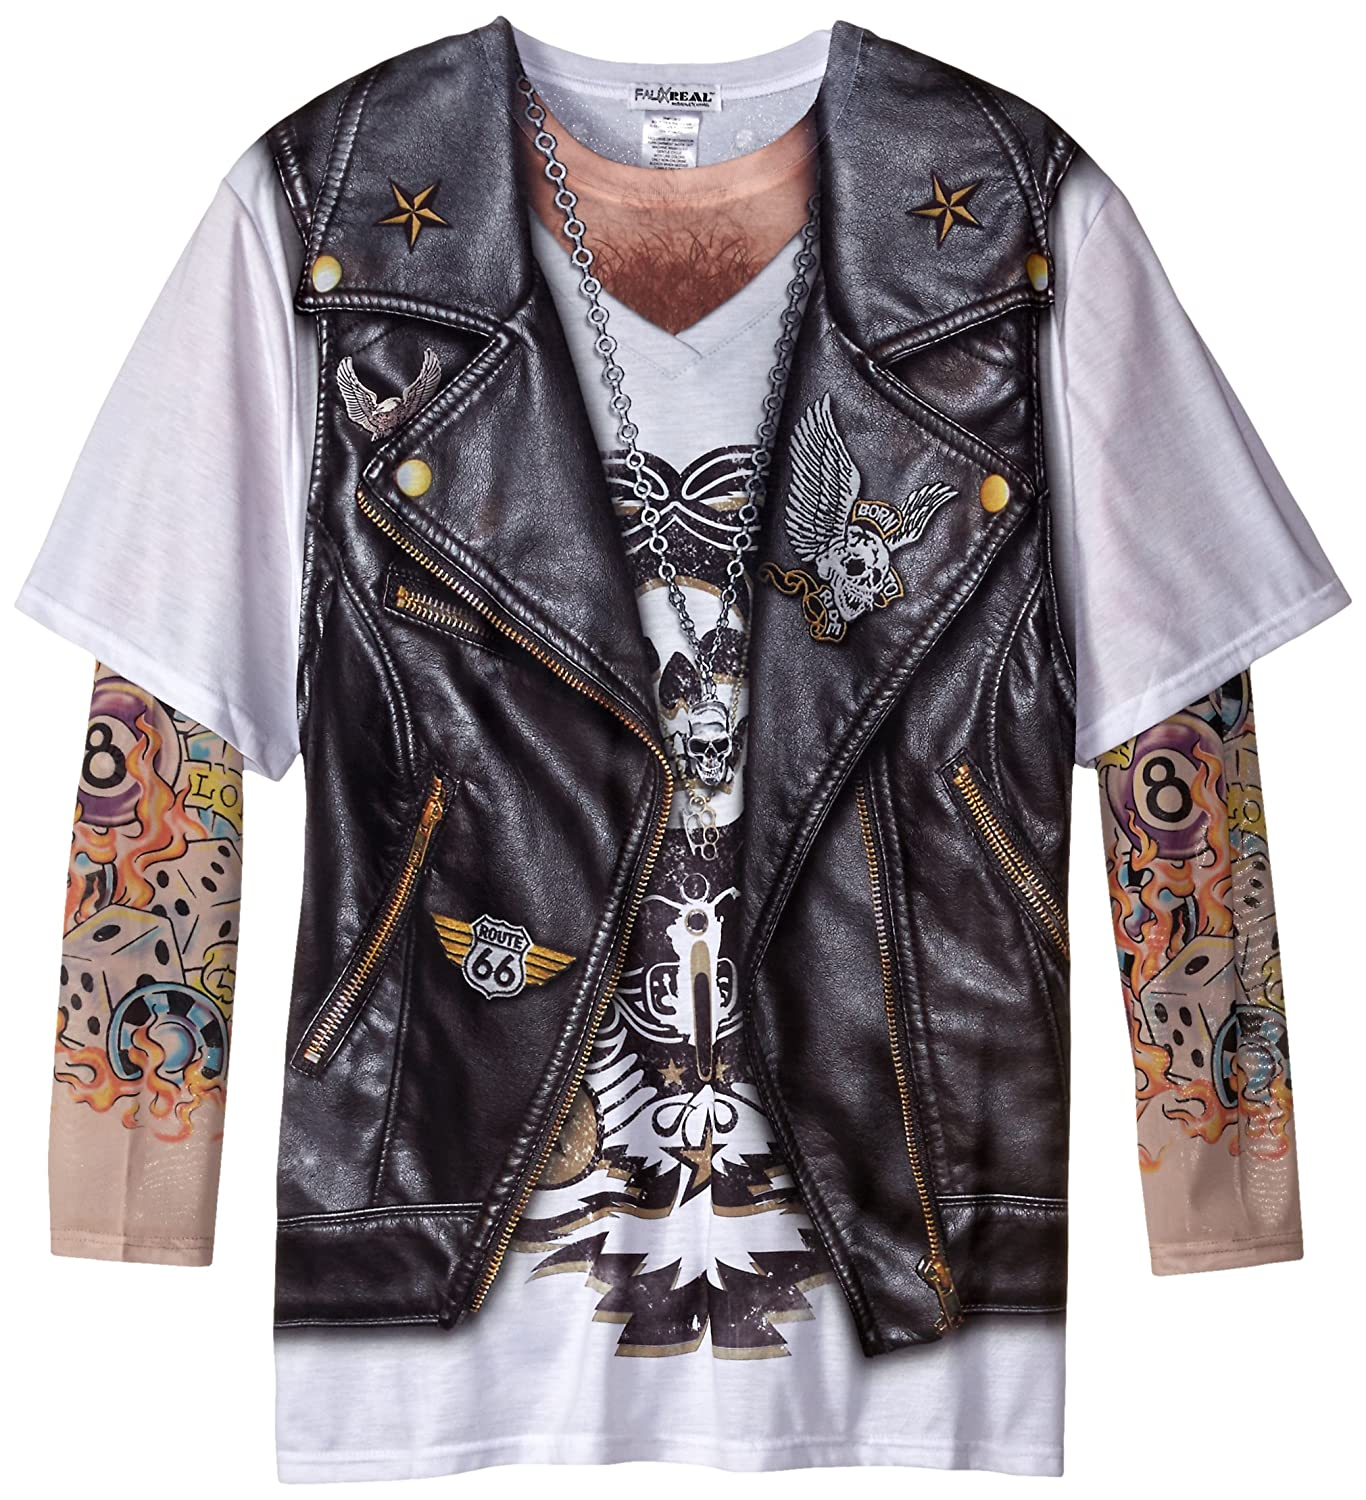 Faux Real Men's Big-Tall Biker Tattoo T-Shirt With Mesh Long Sleeves